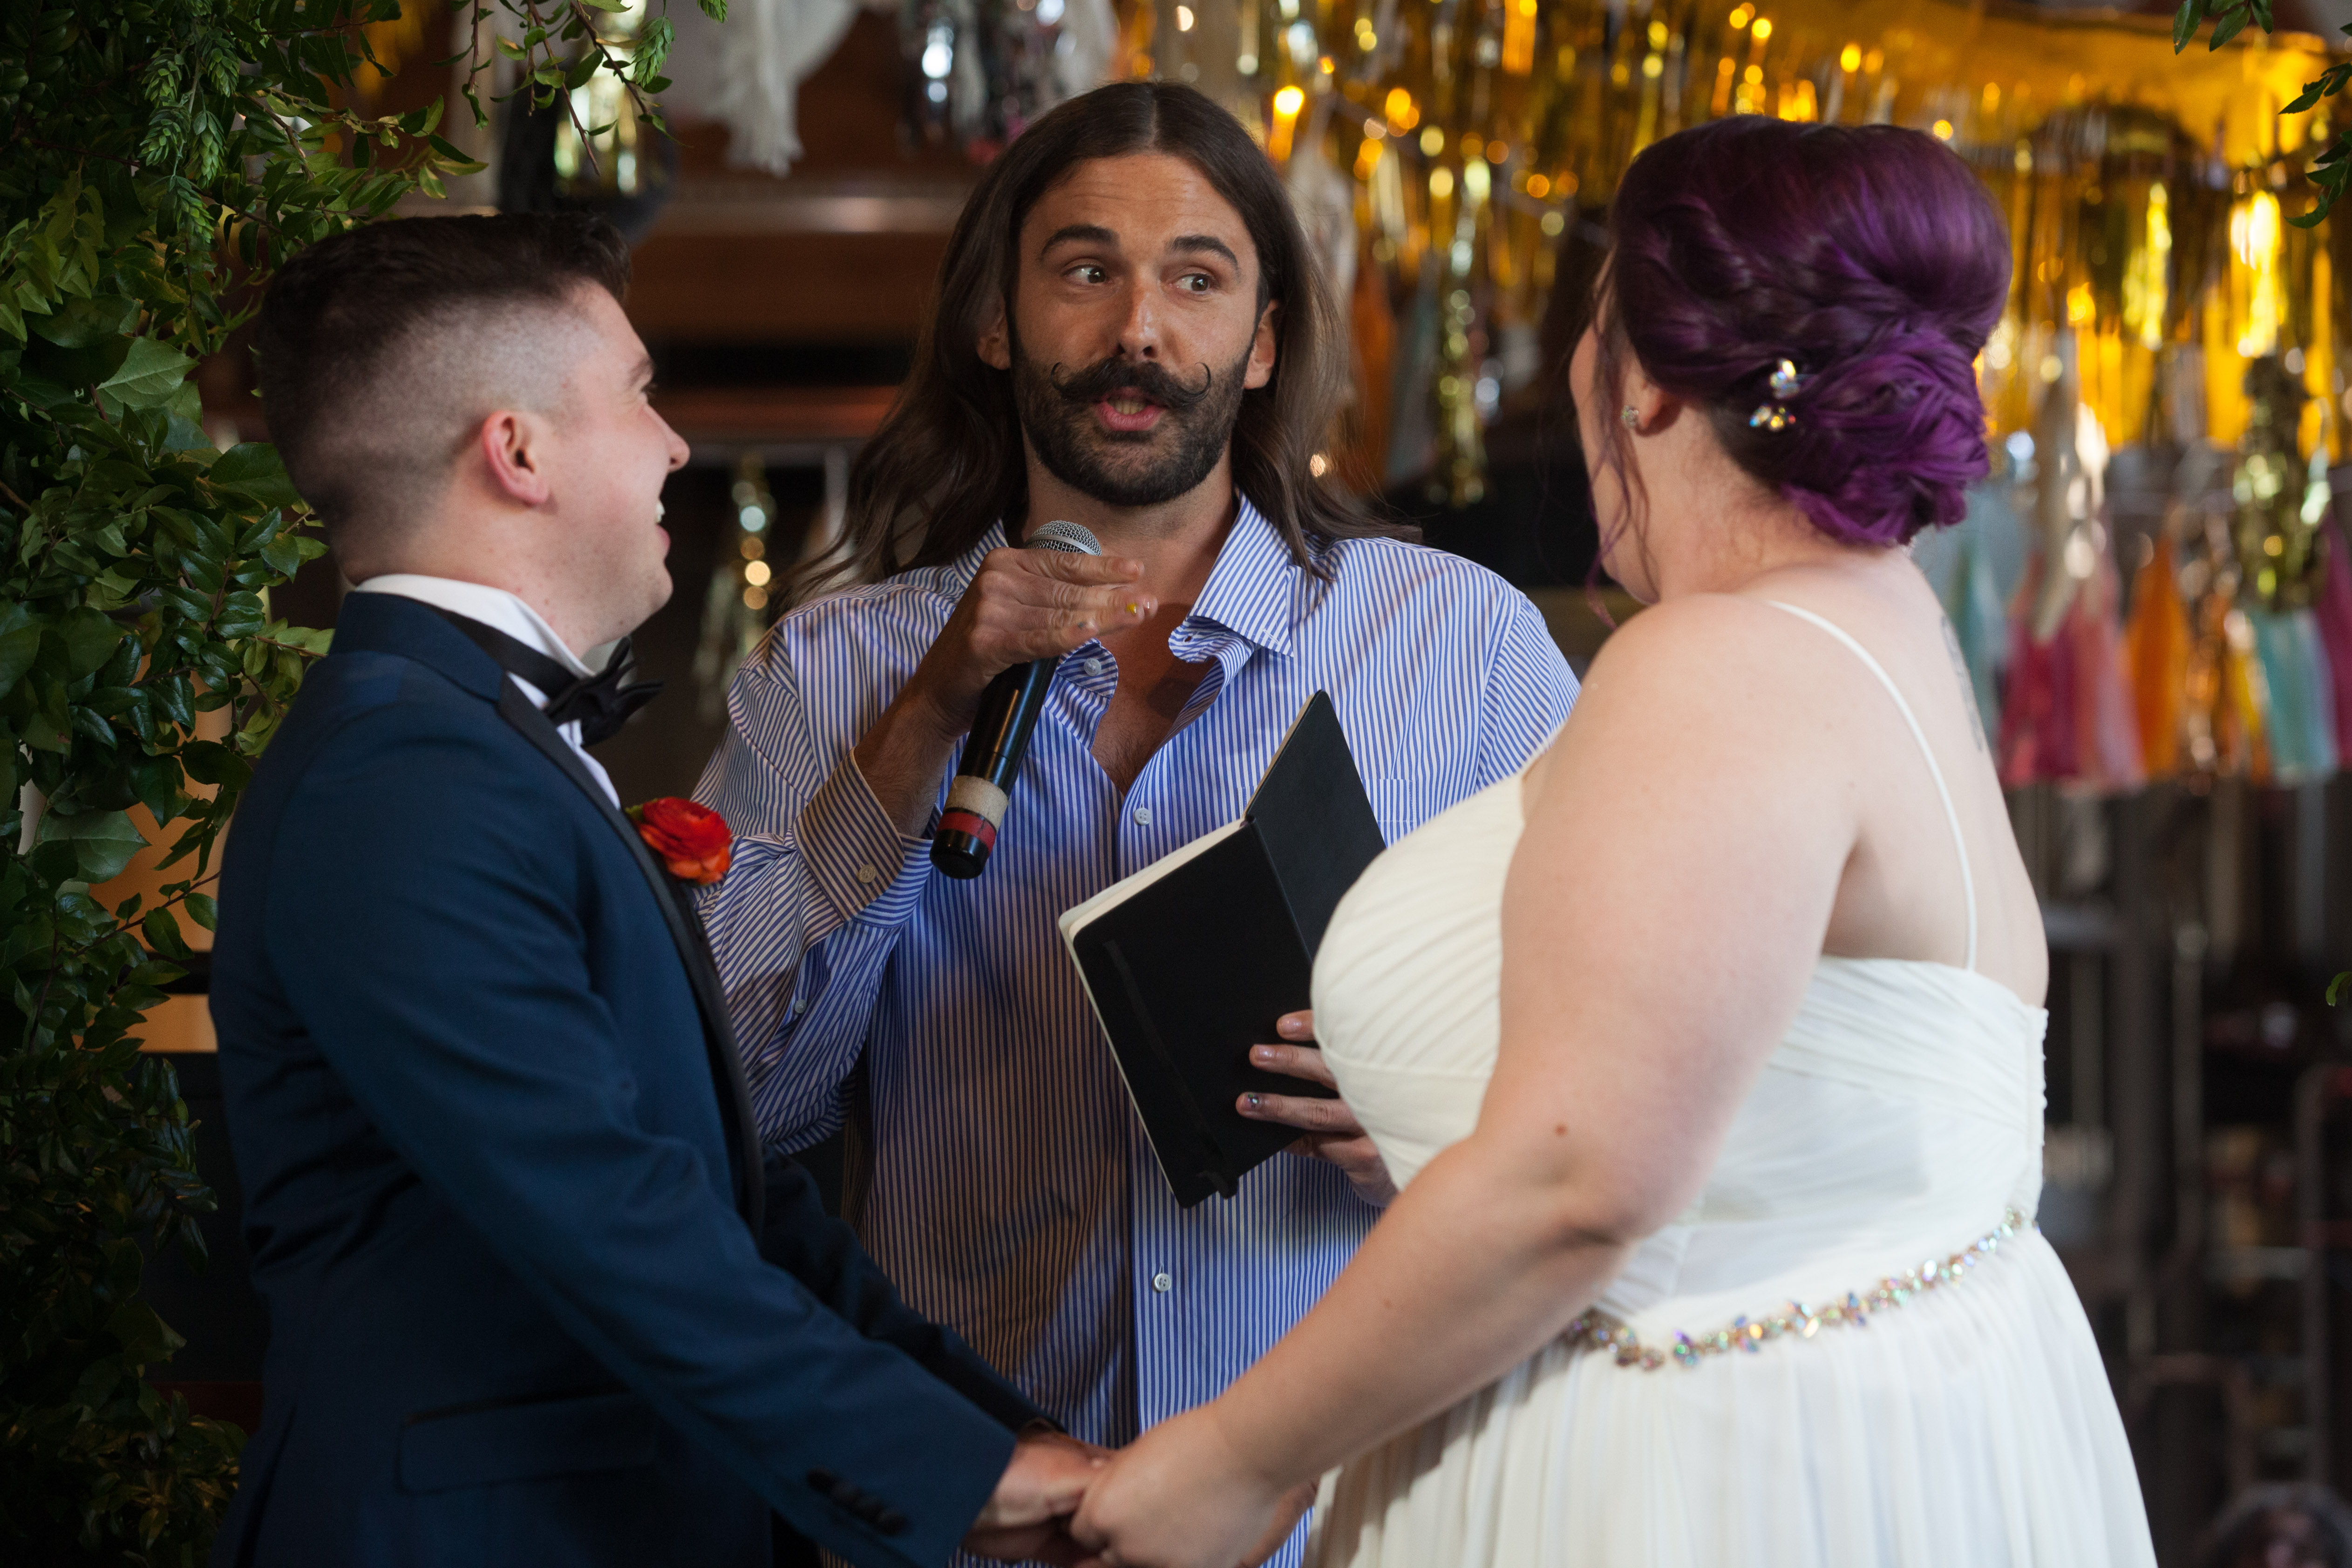 CAN YOU EVEN BELIEVE?! Jonathan Van Ness partners with Elysian Brewing to officiate Washington couple's wedding at Elysian's Capitol Hill brewpub in Seattle on June 4, 2019. This marks the first LGBTQ+ wedding Jonathan Van Ness officiated, continuing his commitment of championing marriage equality. (Photo by Matt Mills McKnight/Invision for Elysian Brewing/AP Images)